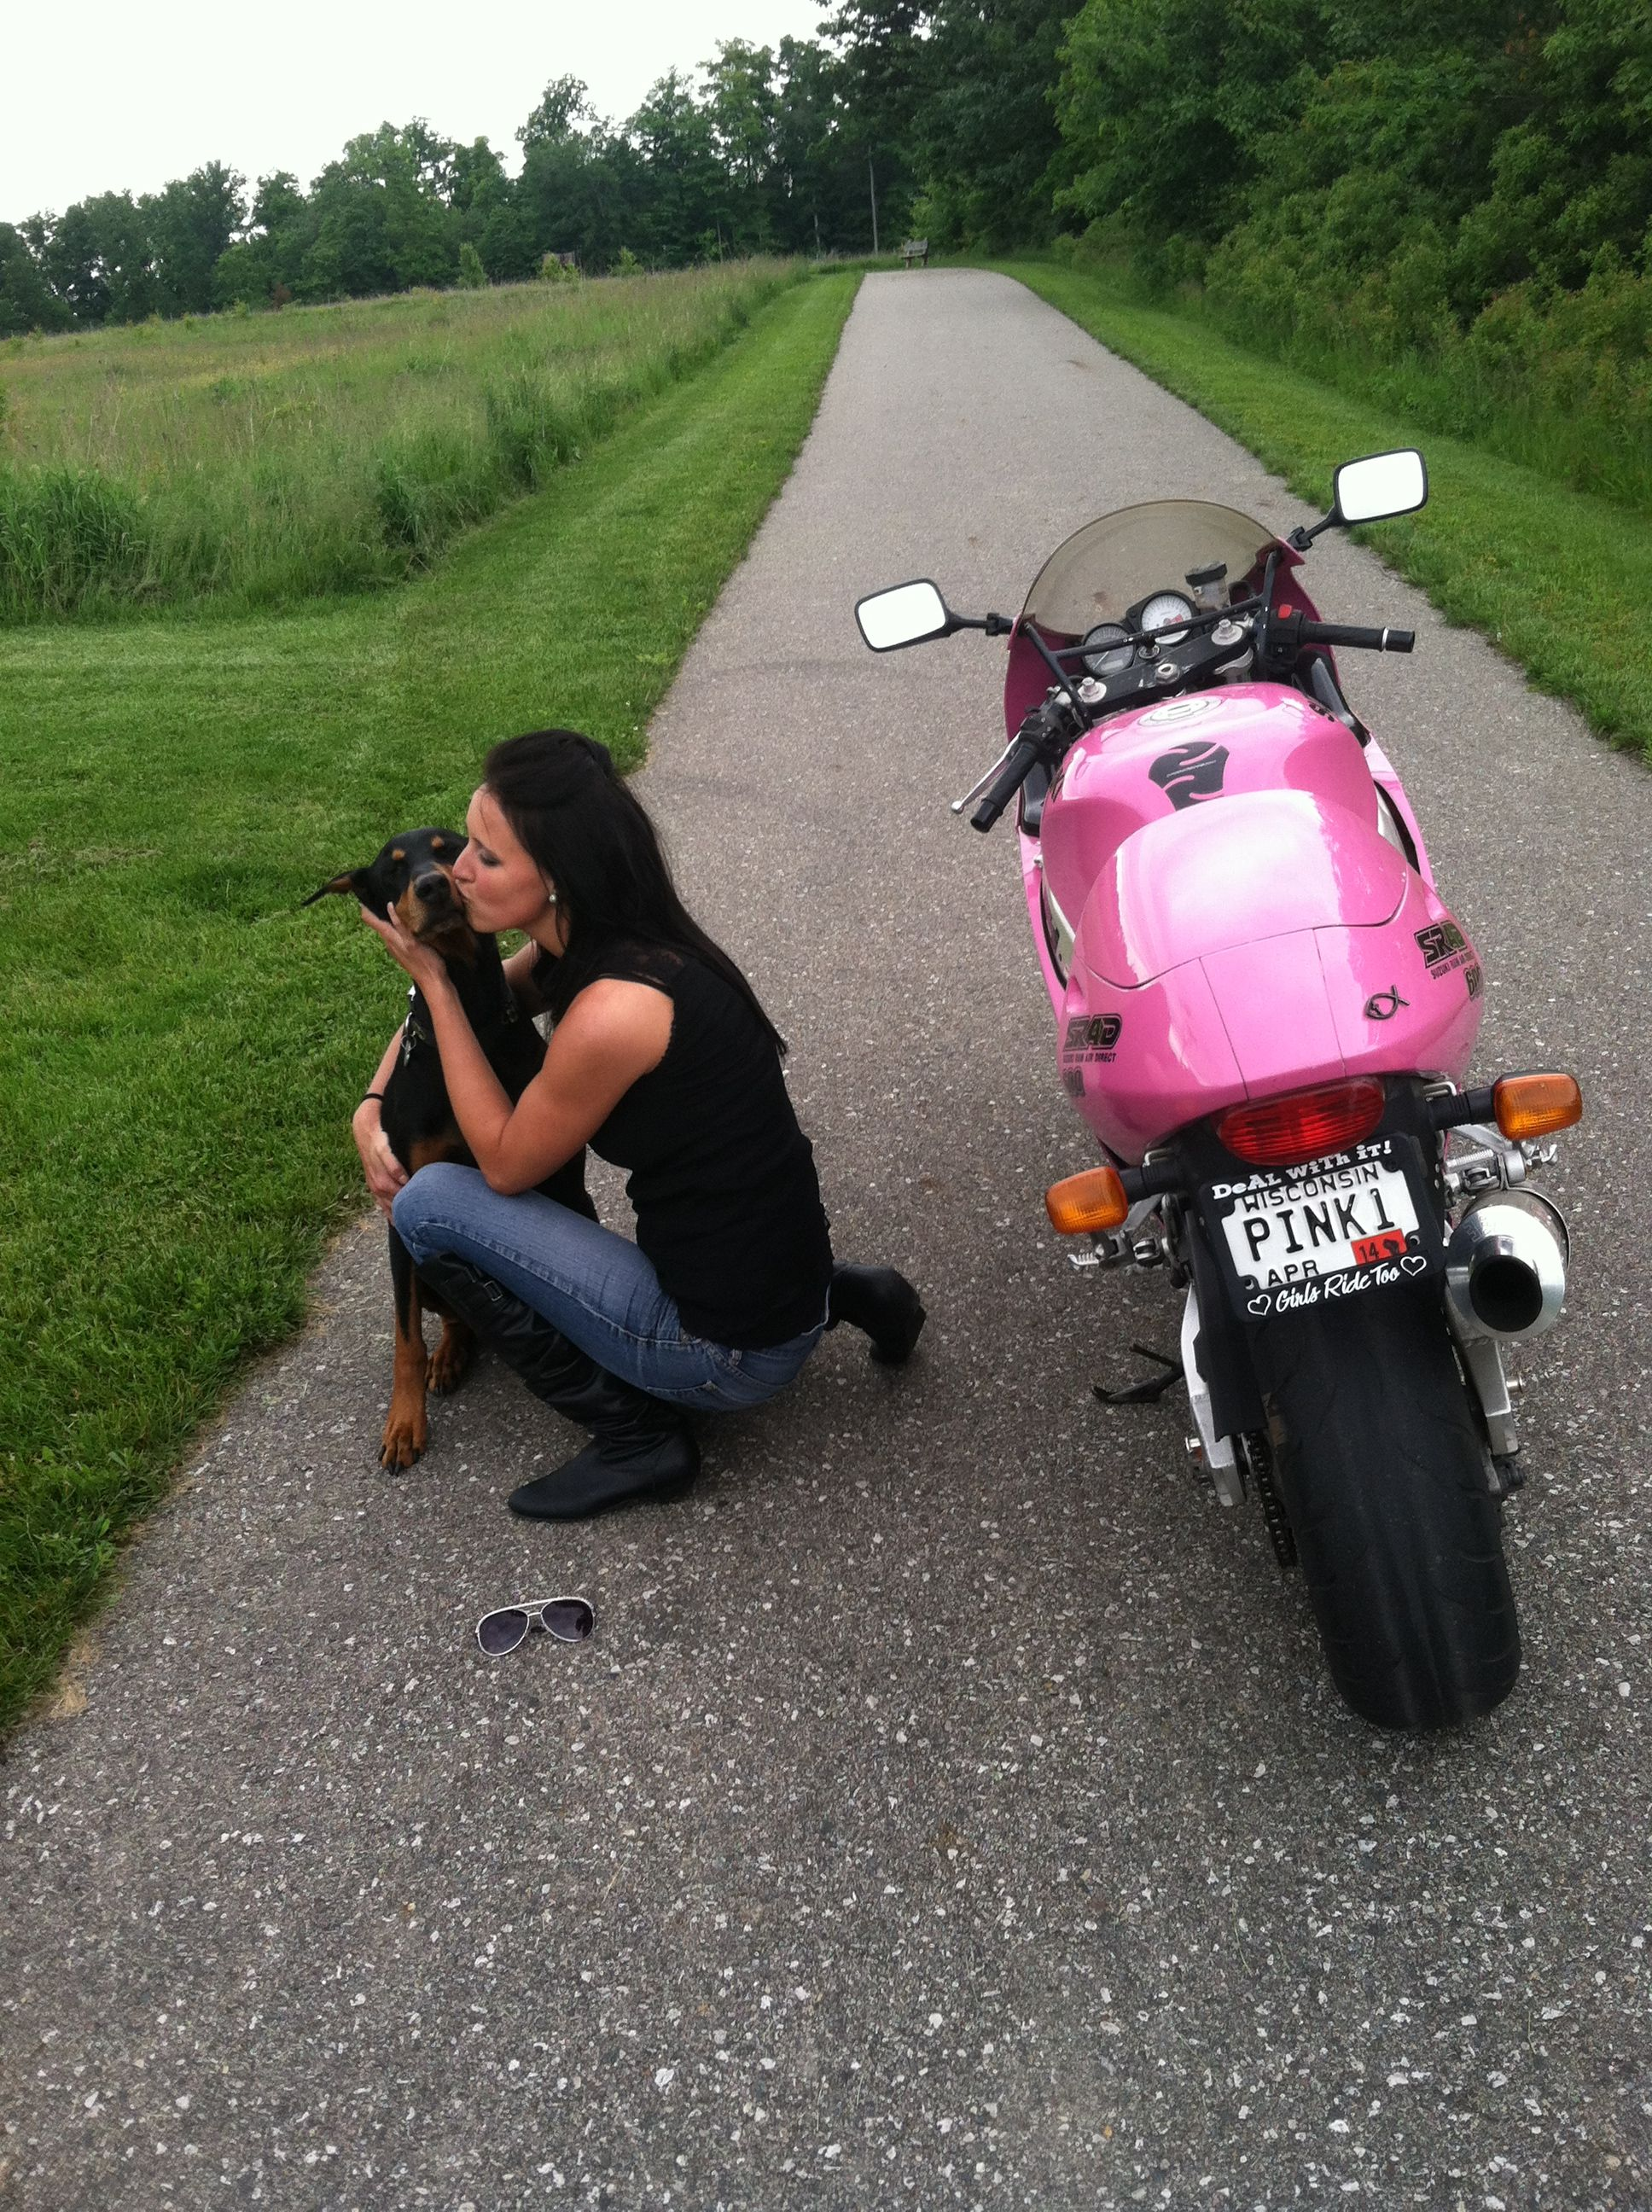 Girl's ride too Pink motorcycle